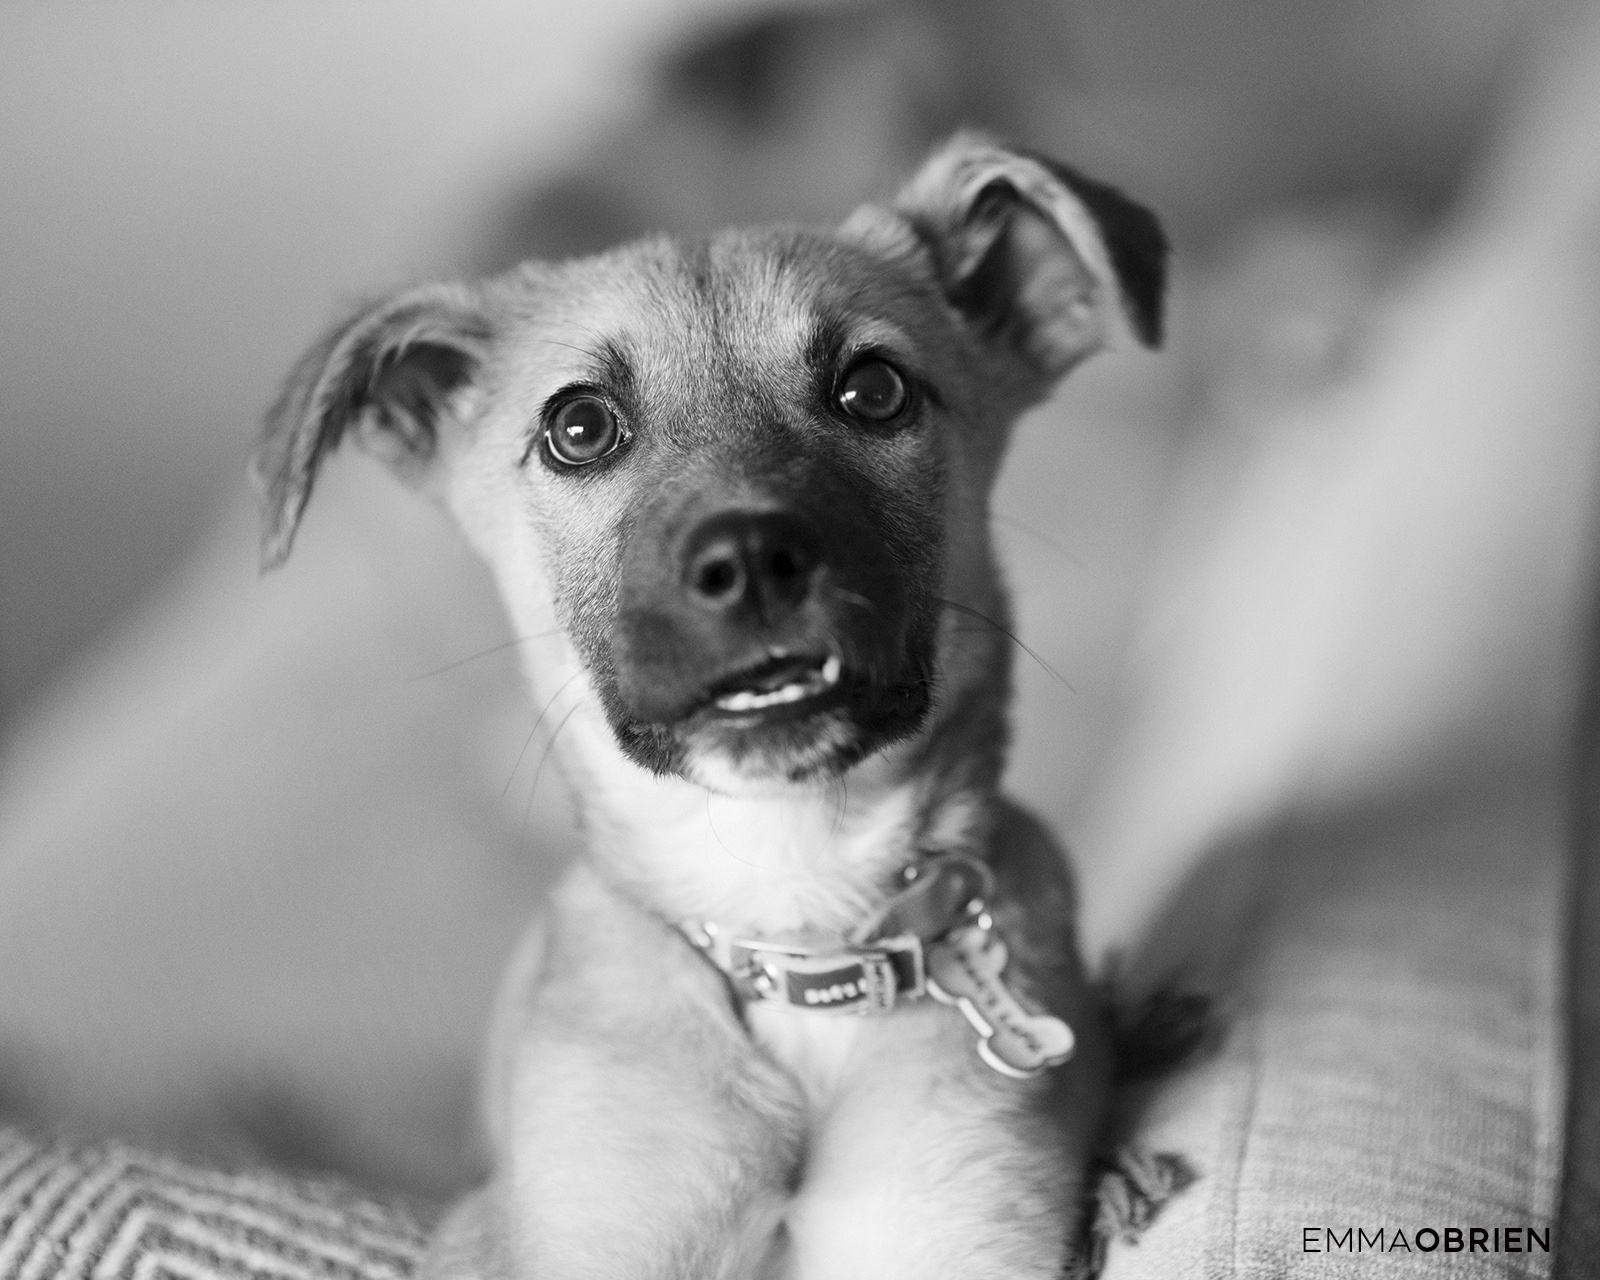 cute puppy portrait showing teeth